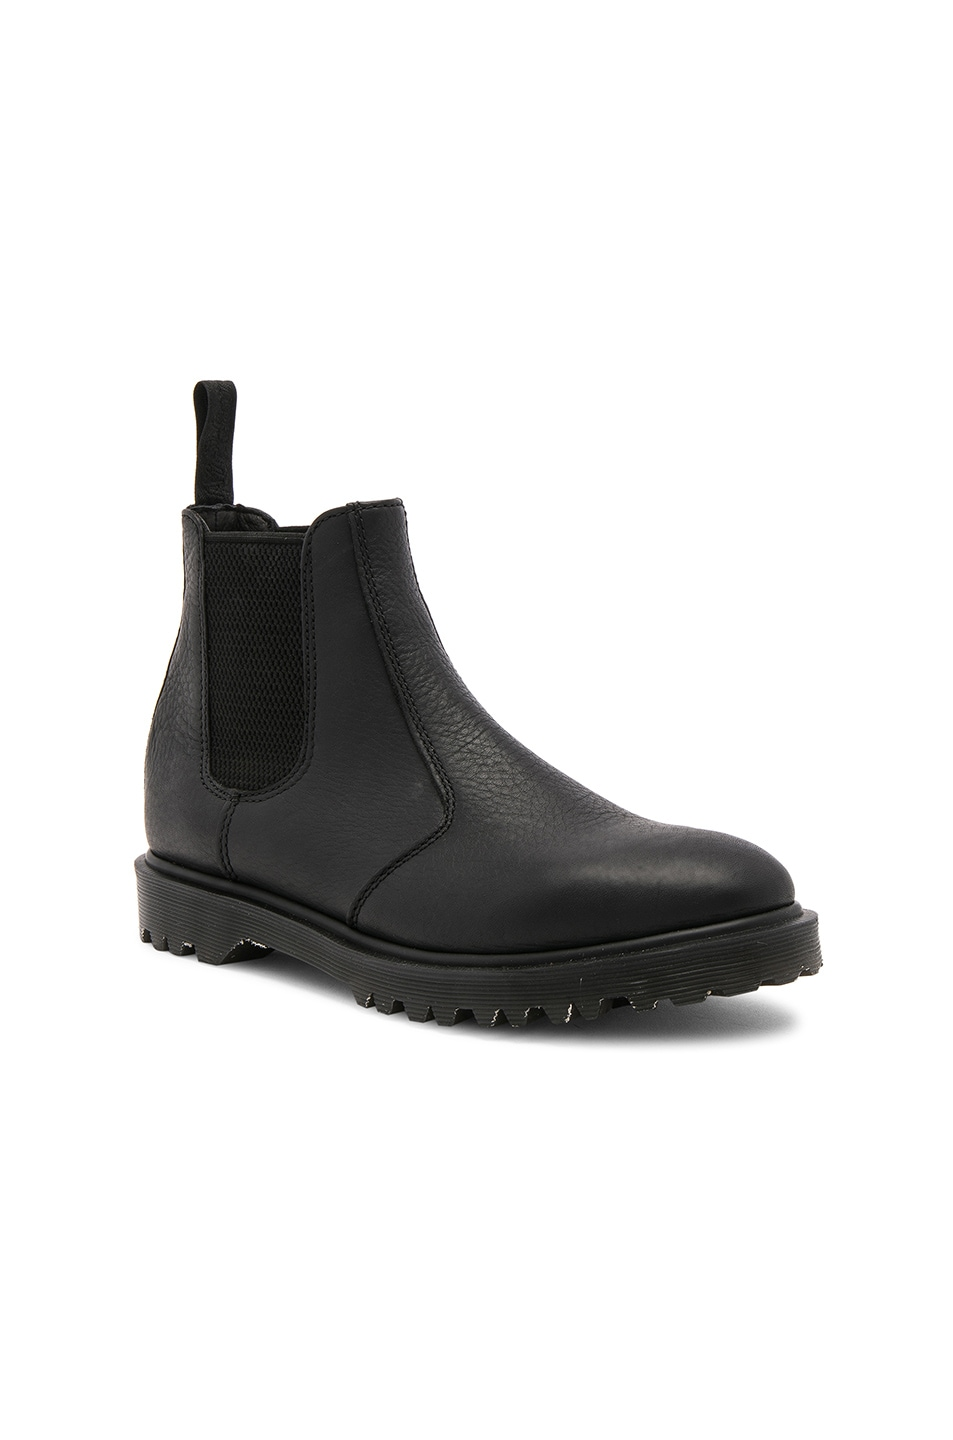 Image 1 of Dr. Martens 2976 Chelsea Leather Boots in Black